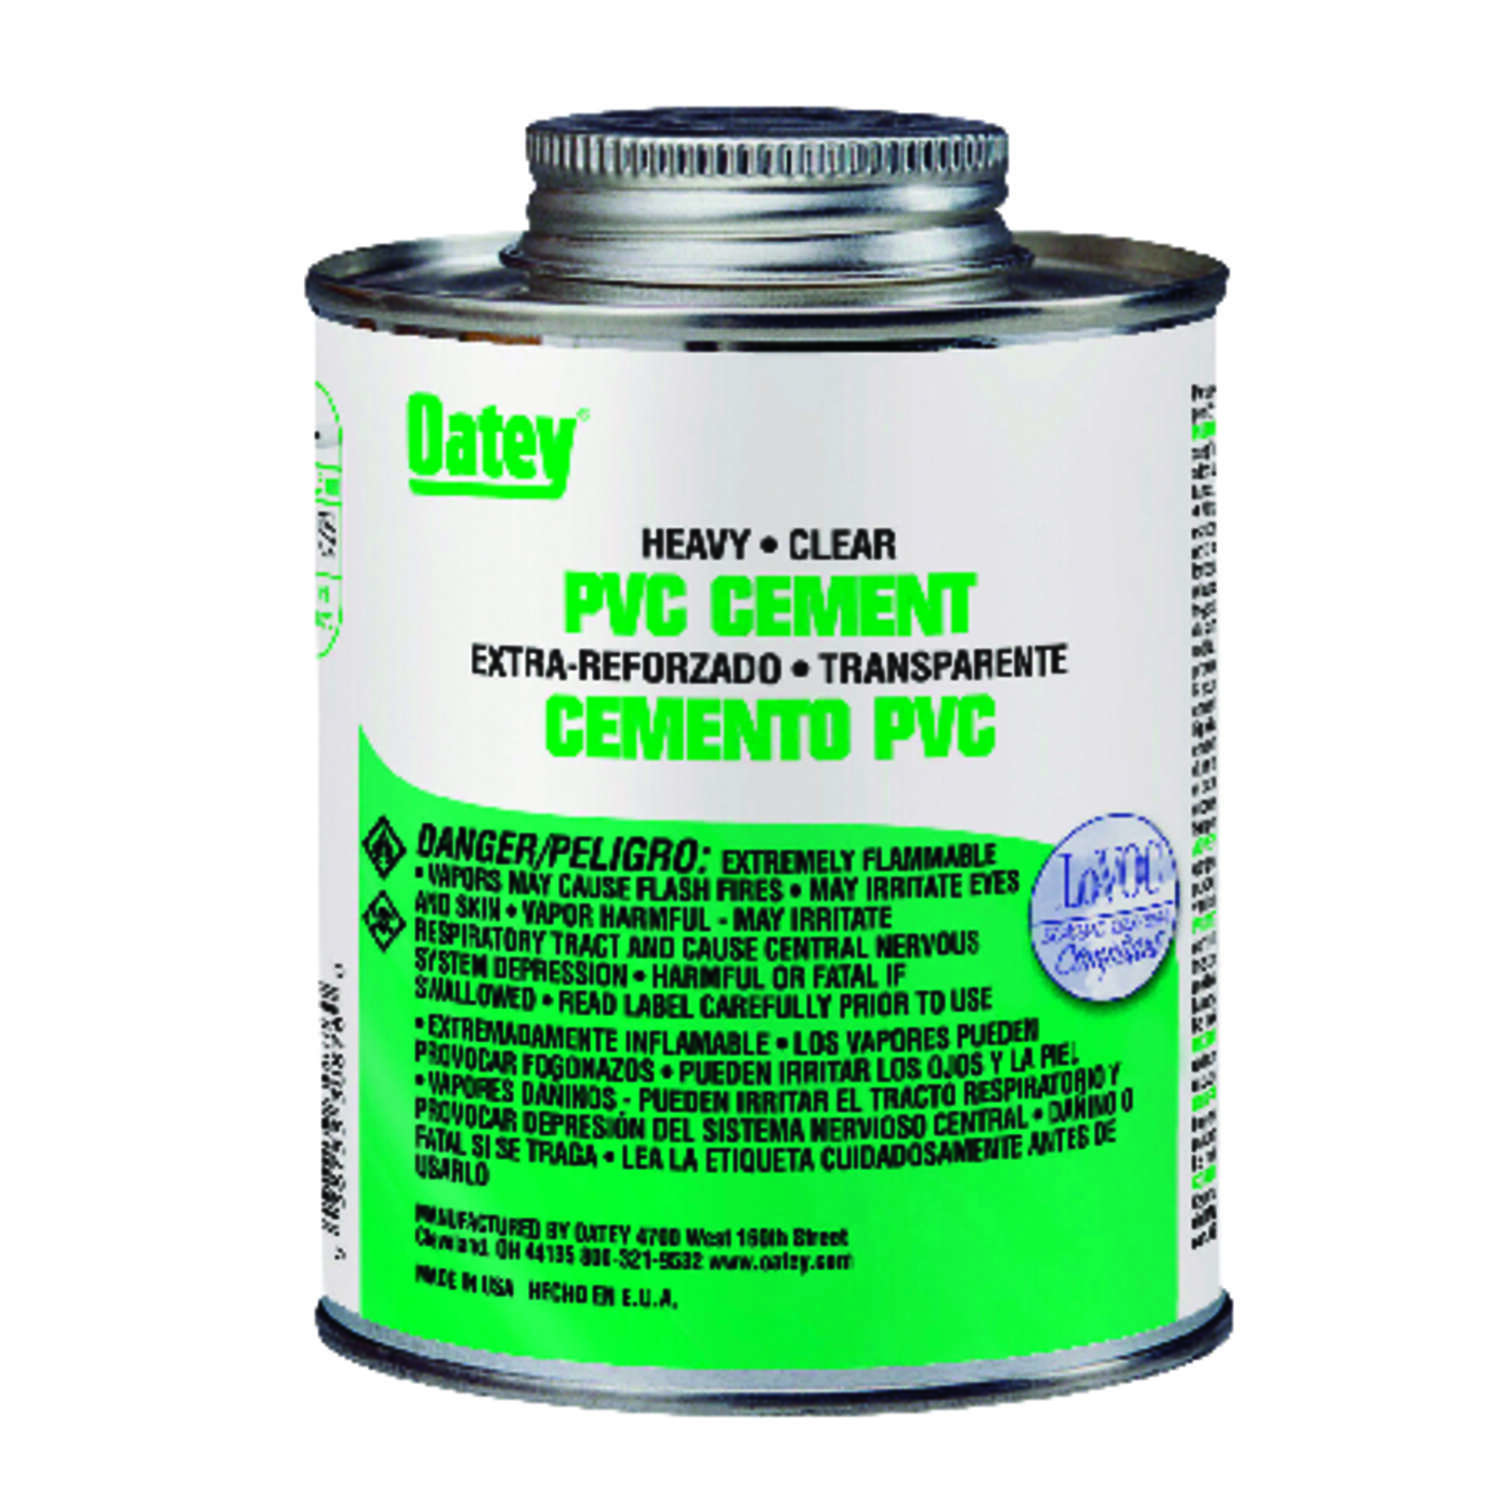 Oatey  Heavy Duty  Clear  Cement  For PVC 32 oz.